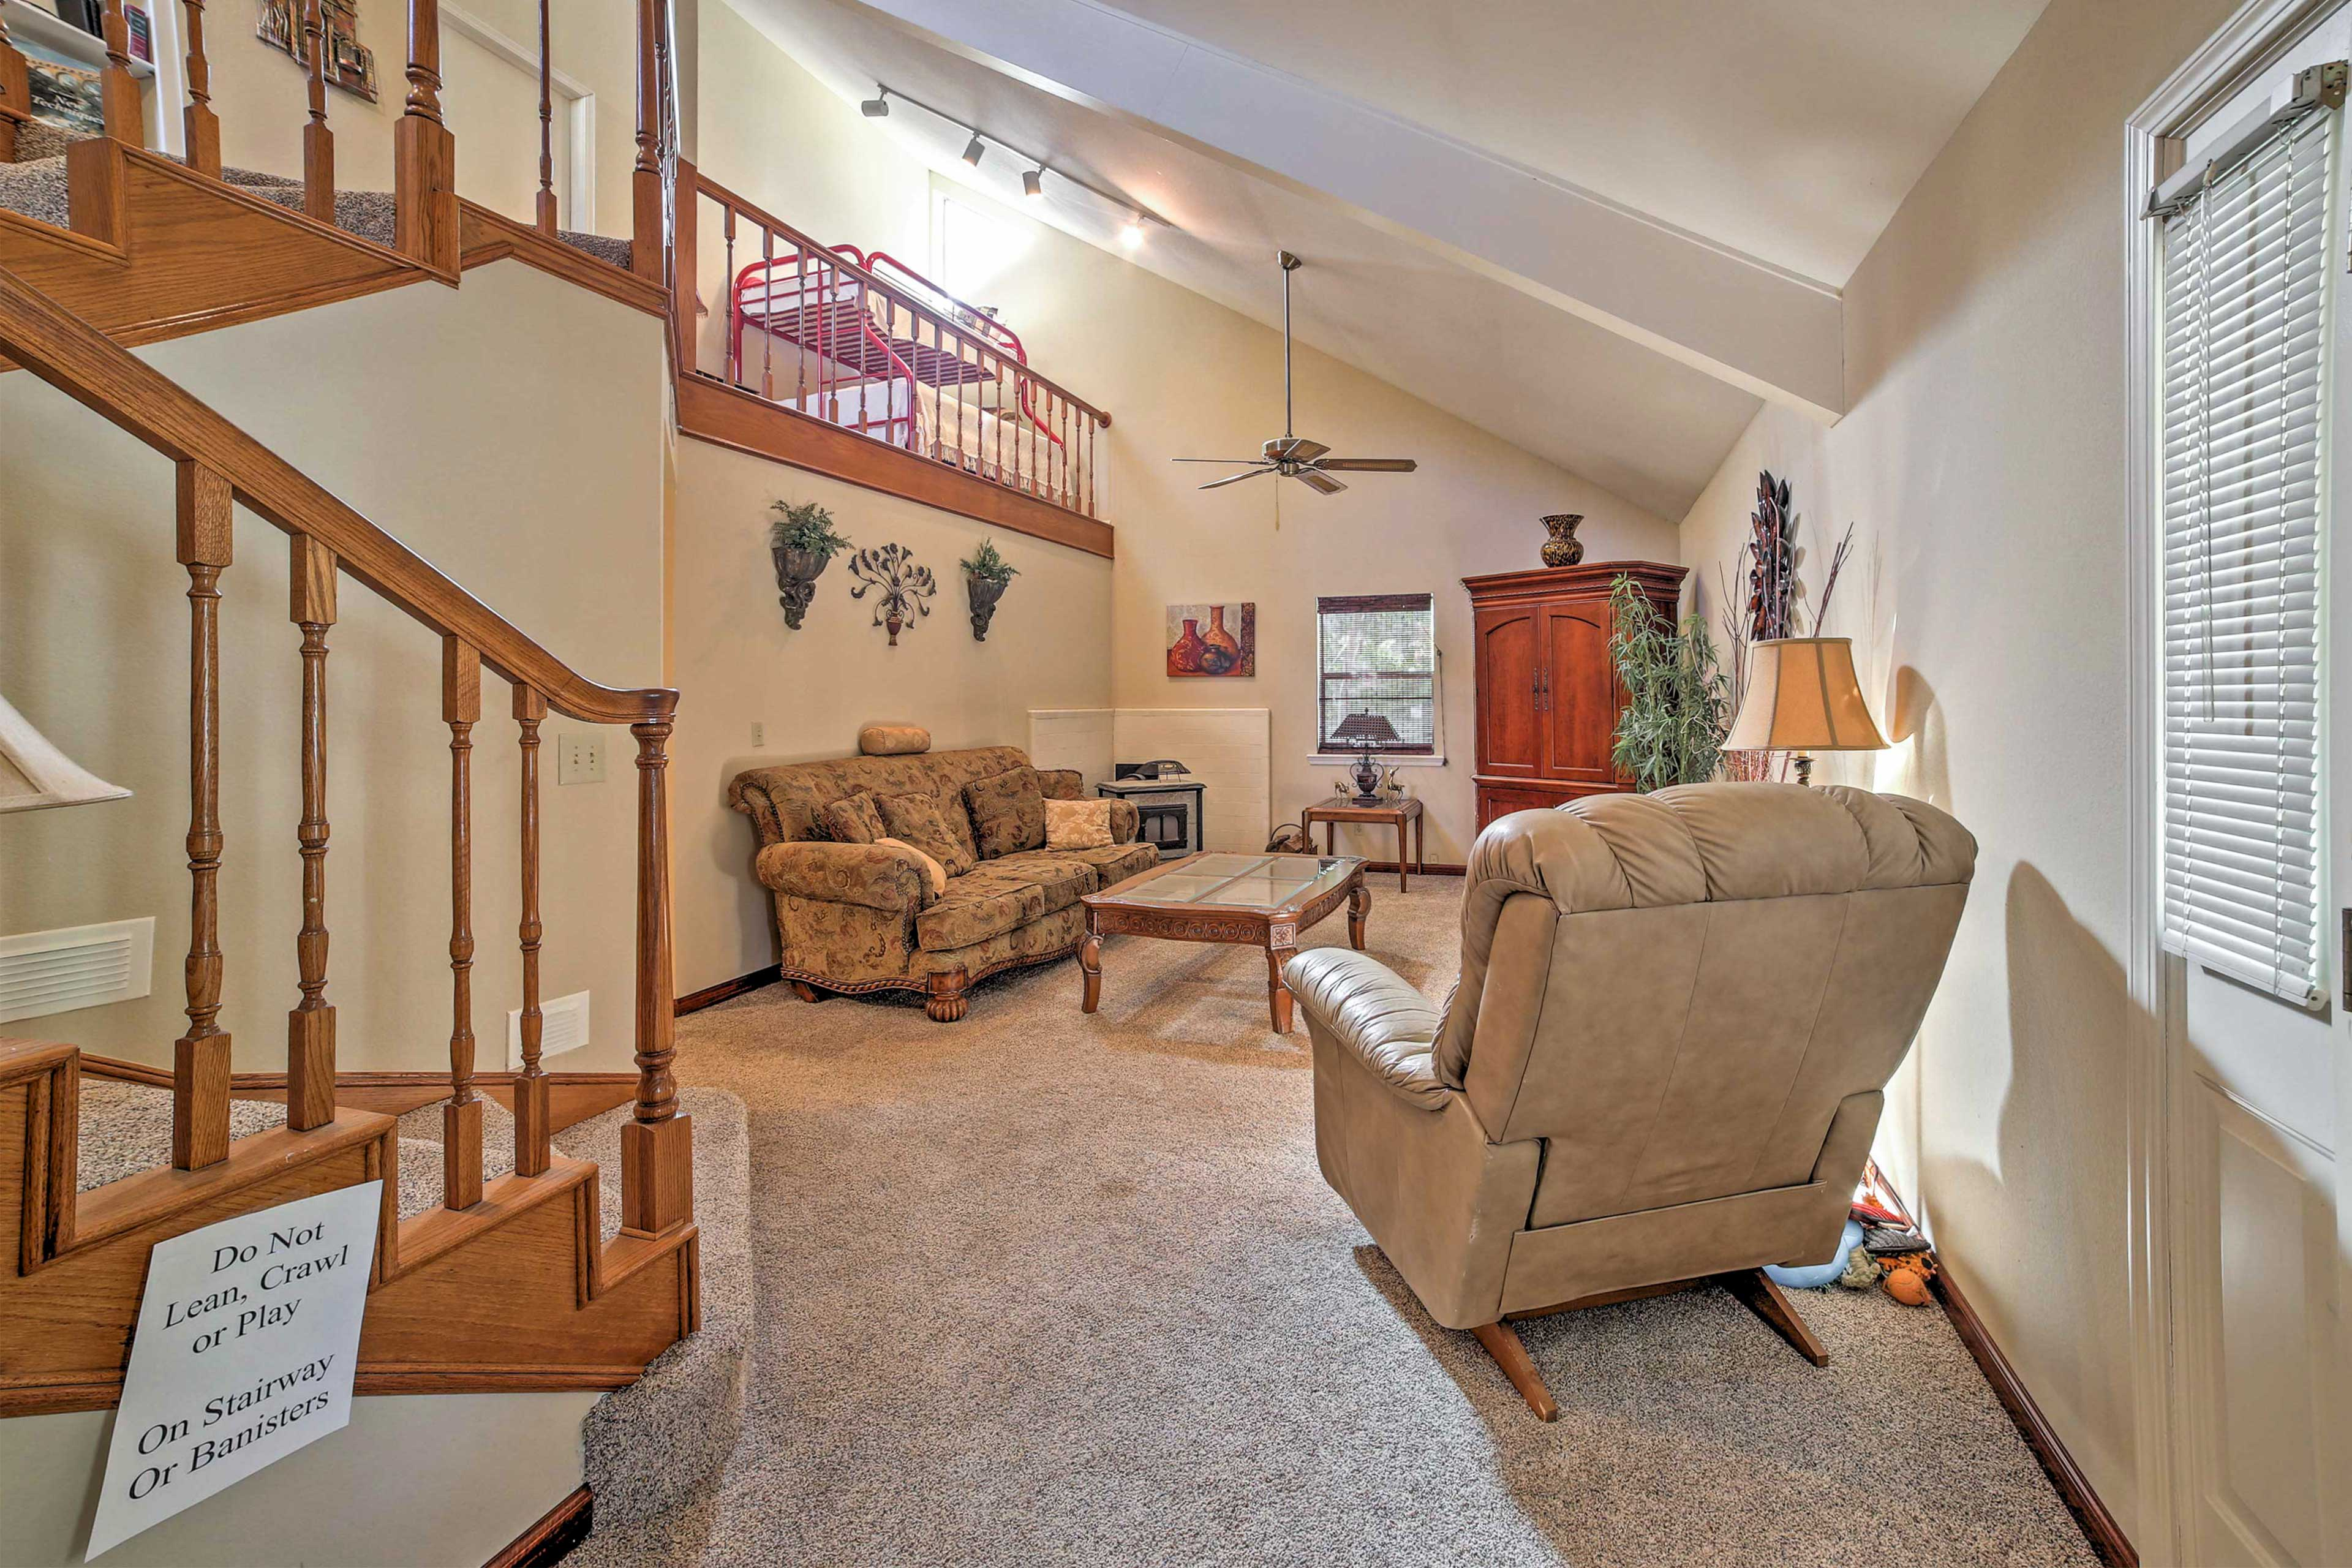 The open staircase & upstairs banister create a spacious ambiance.